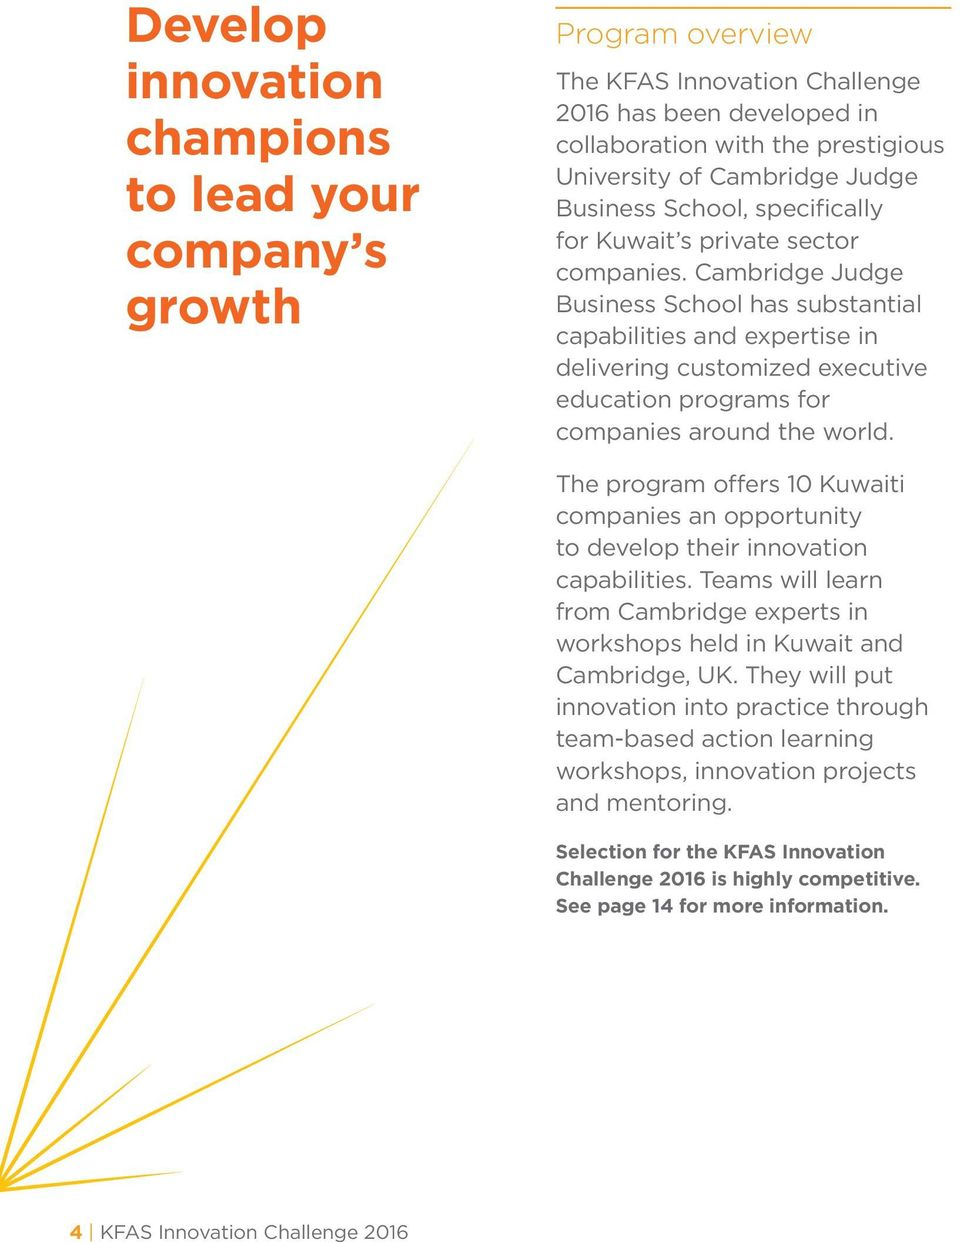 Cambridge Judge Business School has substantial capabilities and expertise in delivering customized executive education programs for companies around the world.